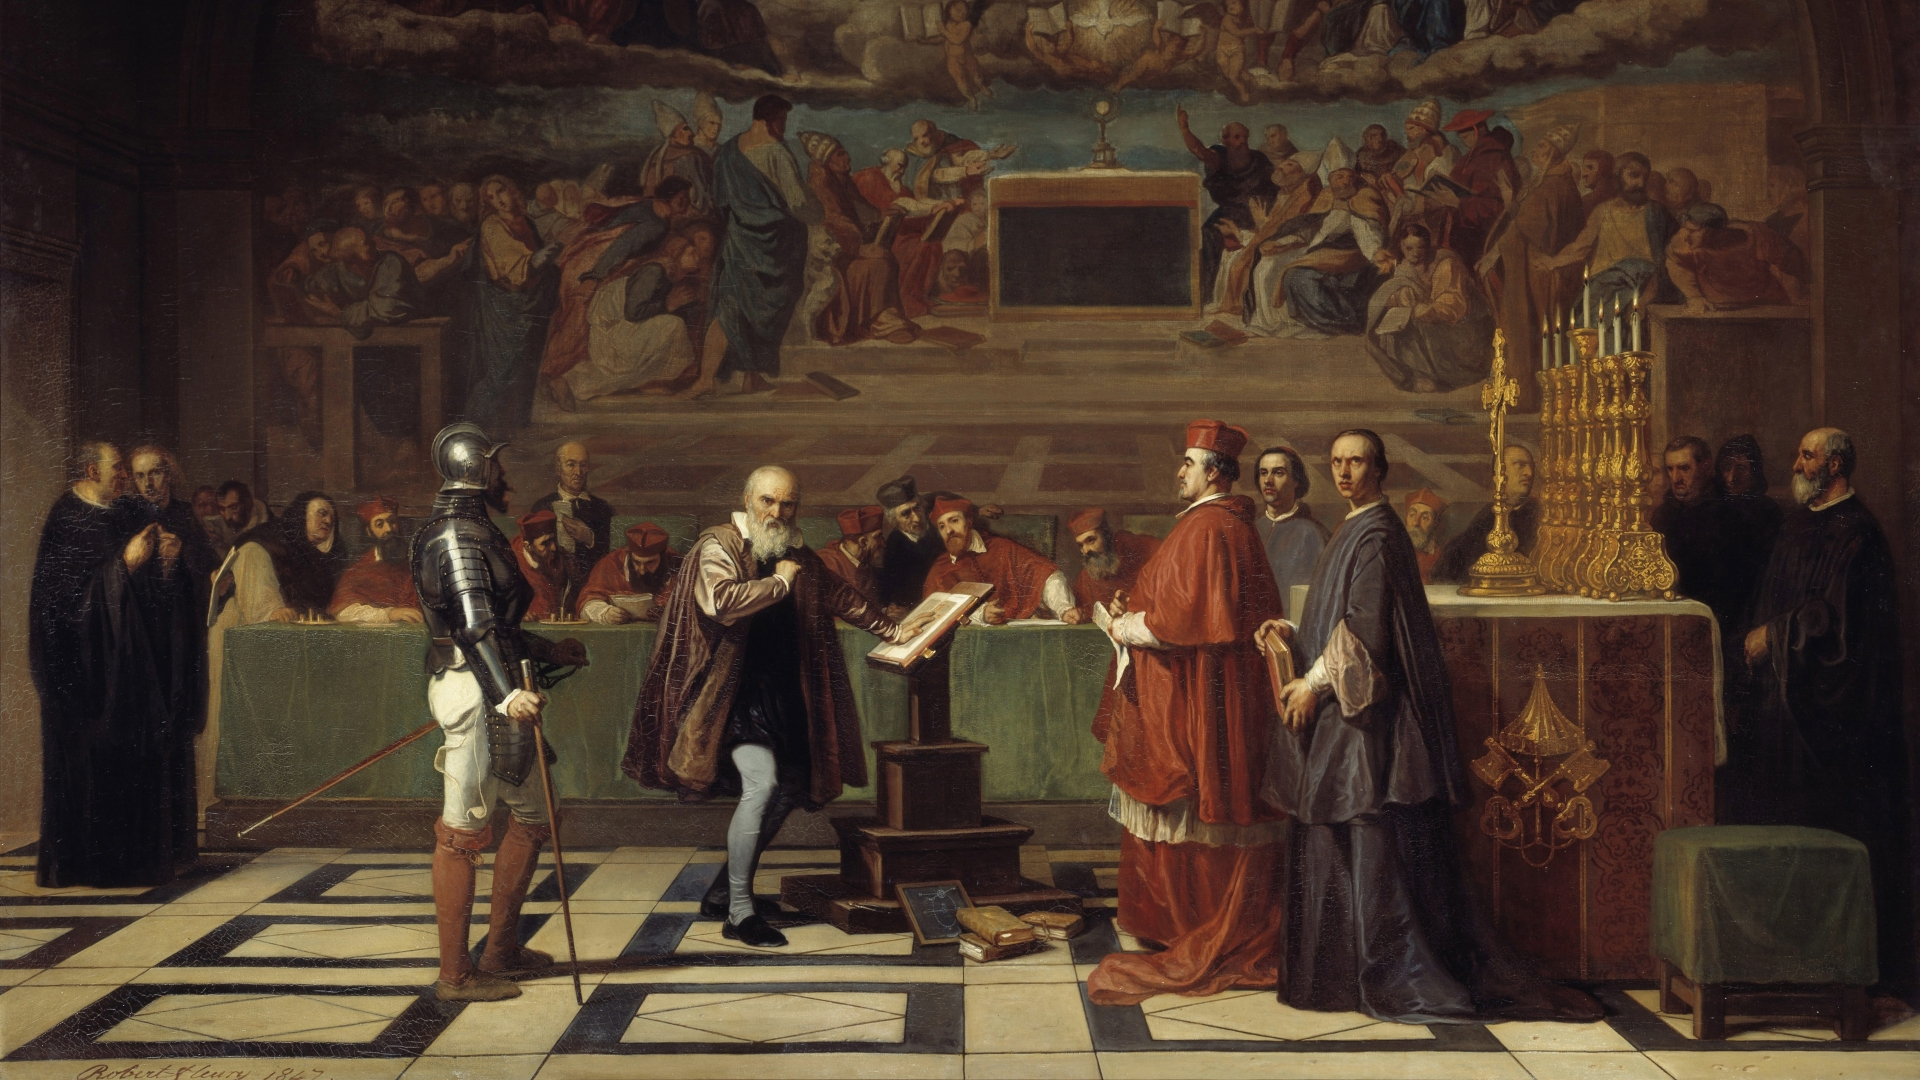 Galileo before the Holy Office in the Vatican. The astronomer was condemned by the Tribunal of the Inquisition for having defended the theories of Copernicus. (Credit: Leemage/Corbis via Getty Images)